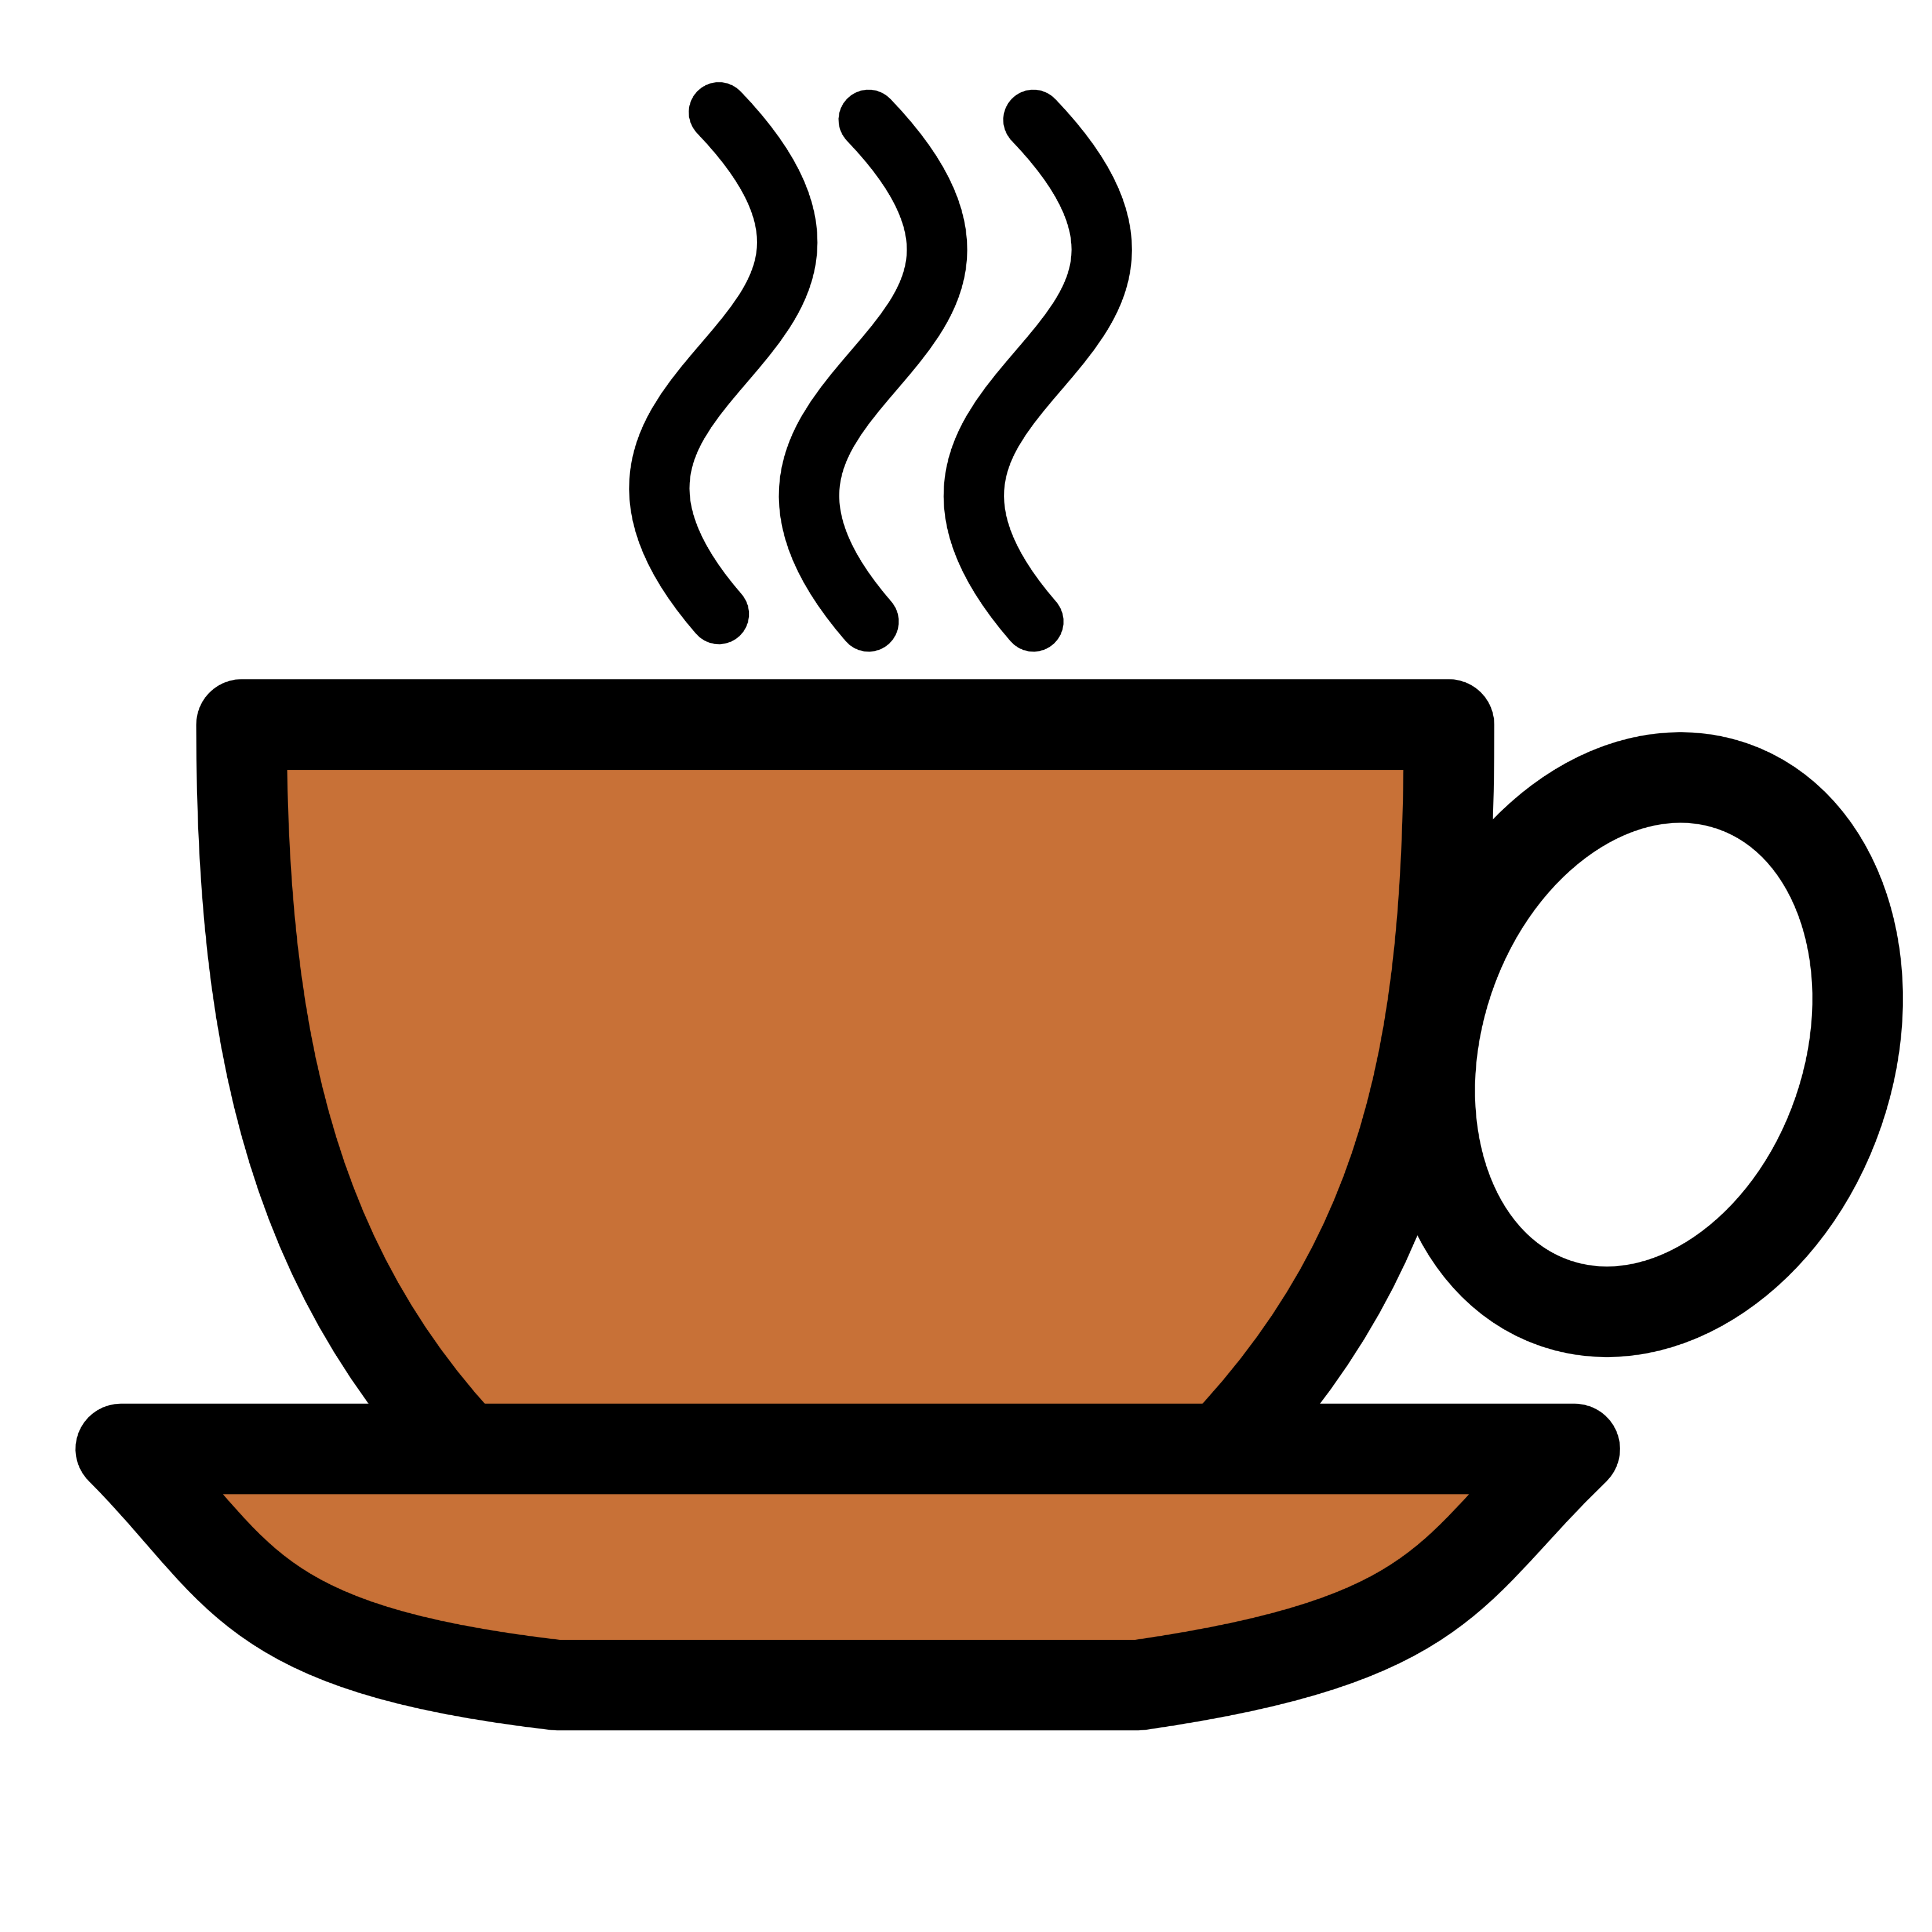 Coffee clipart #11, Download drawings